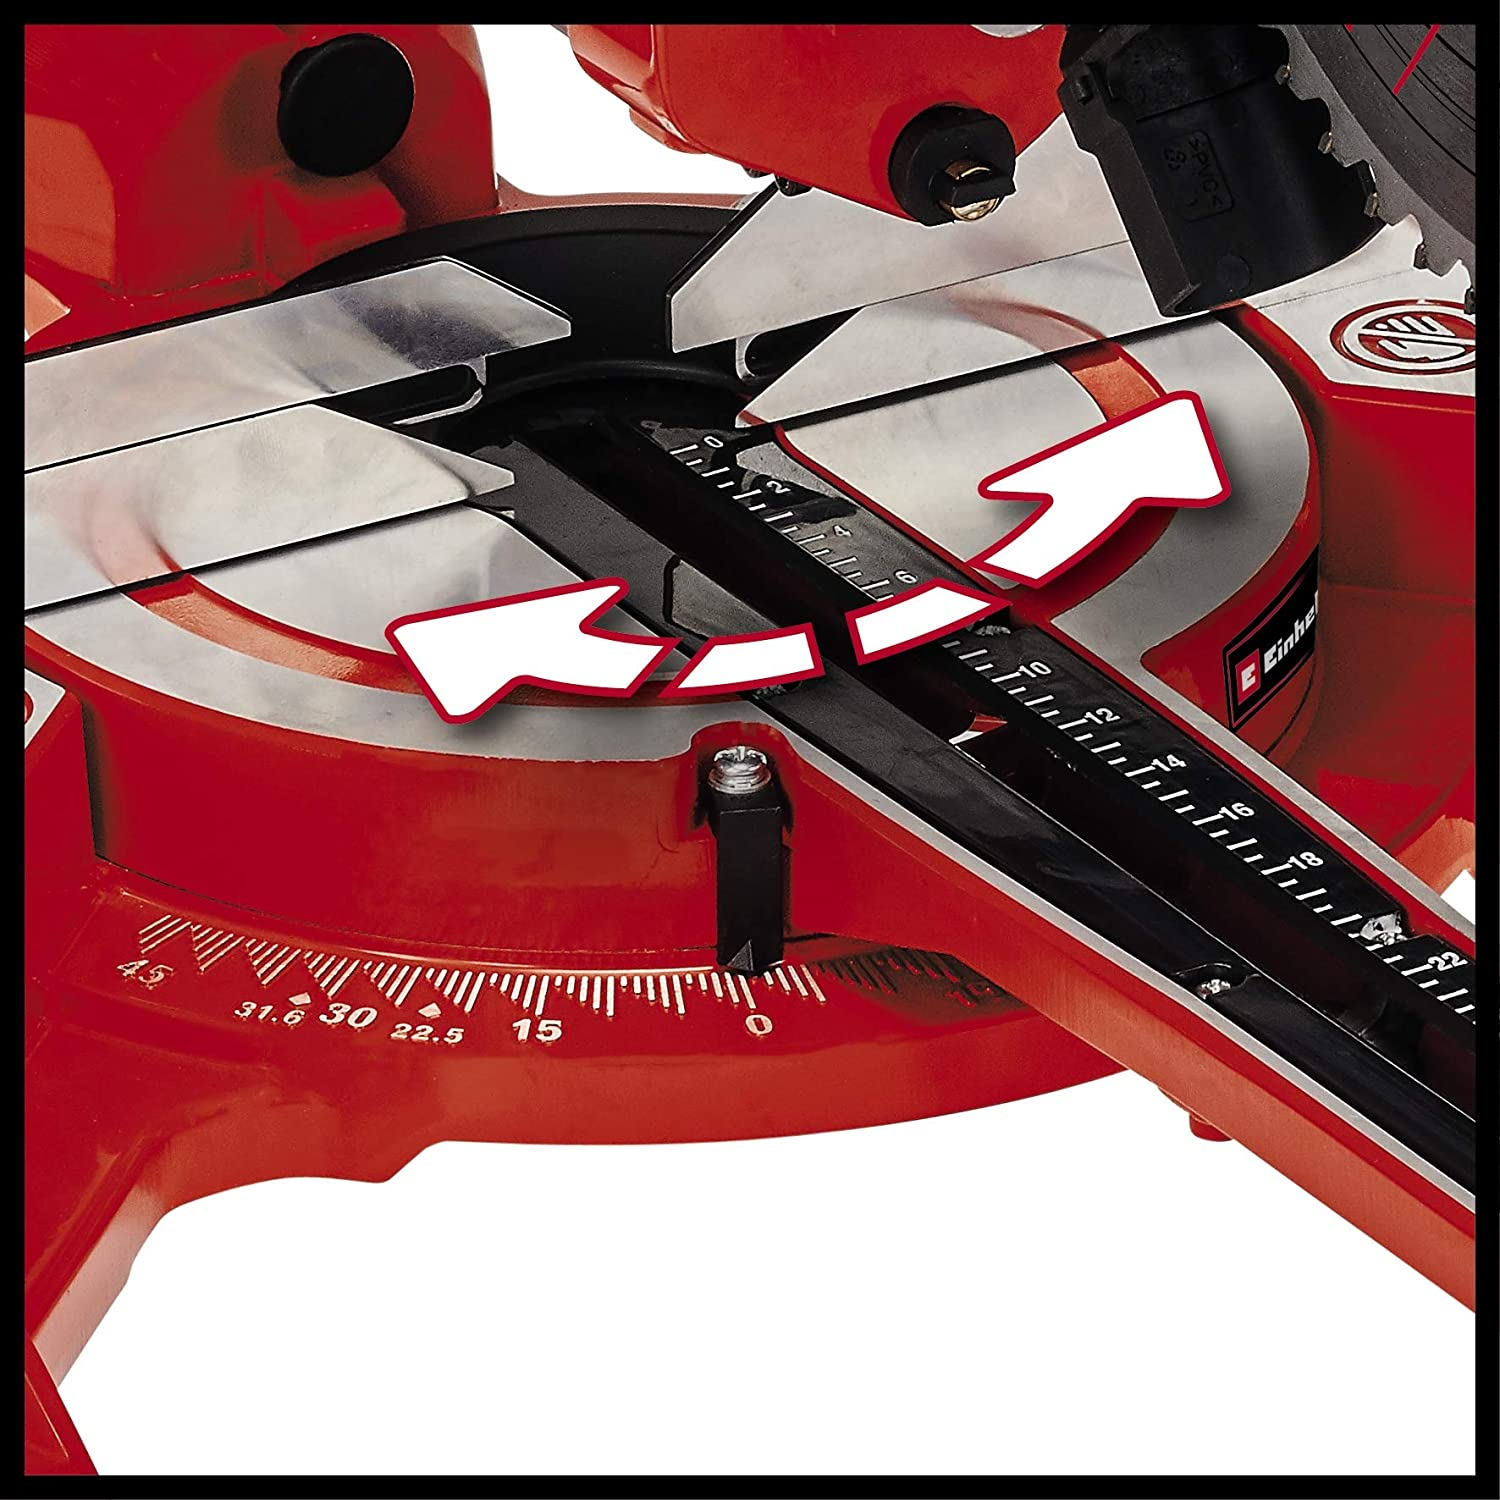 Einhell 4300390 TC-SM/2131//1/Dual Scie /à onglet radiale